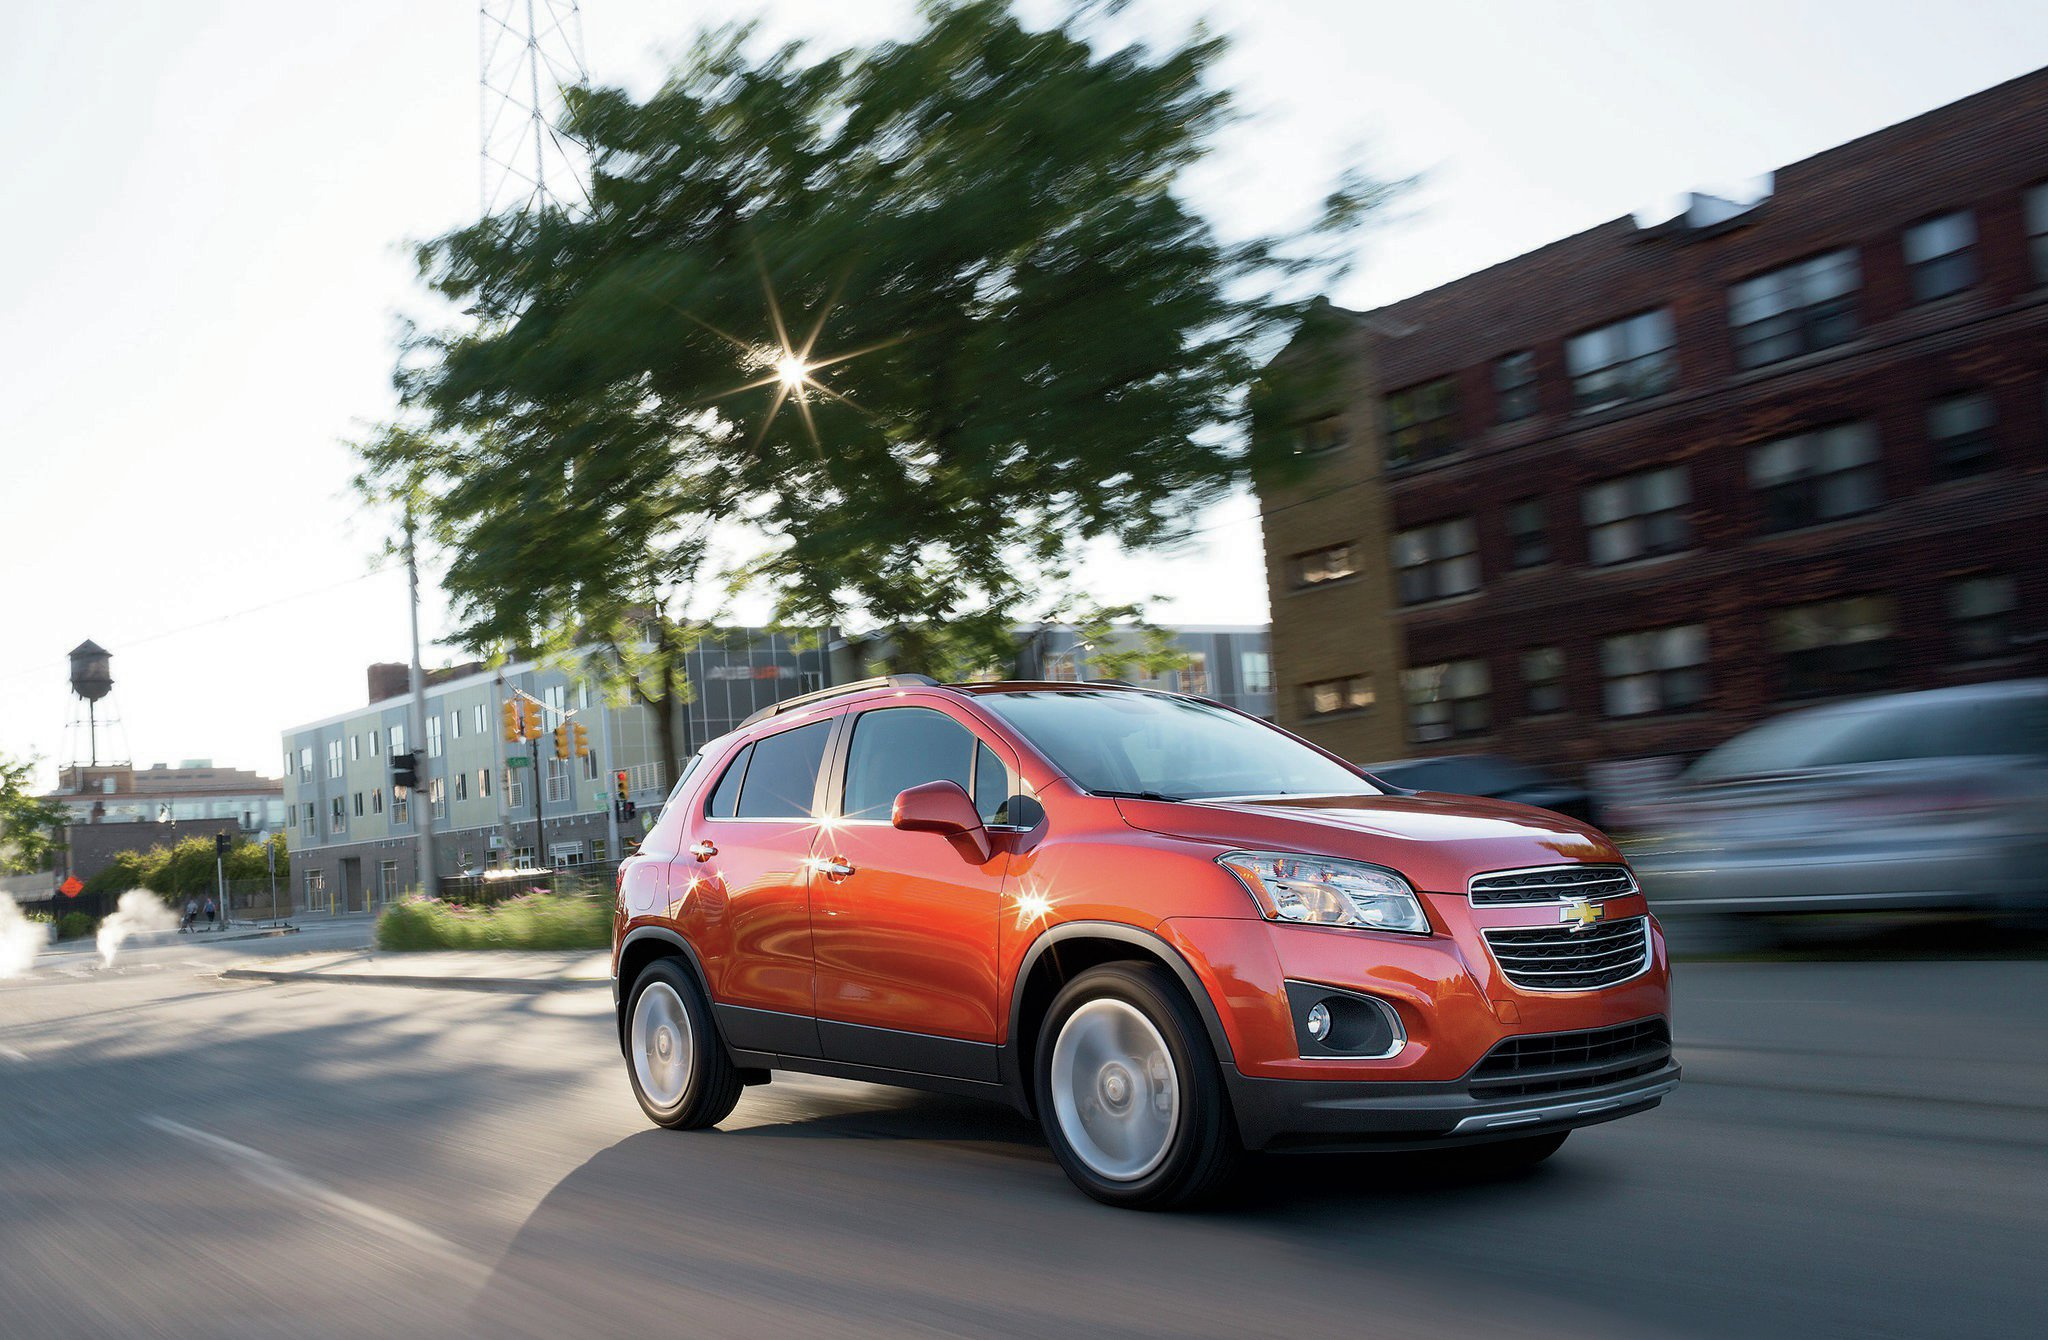 2015 Chevrolet Trax First Drive - Urban Slayer